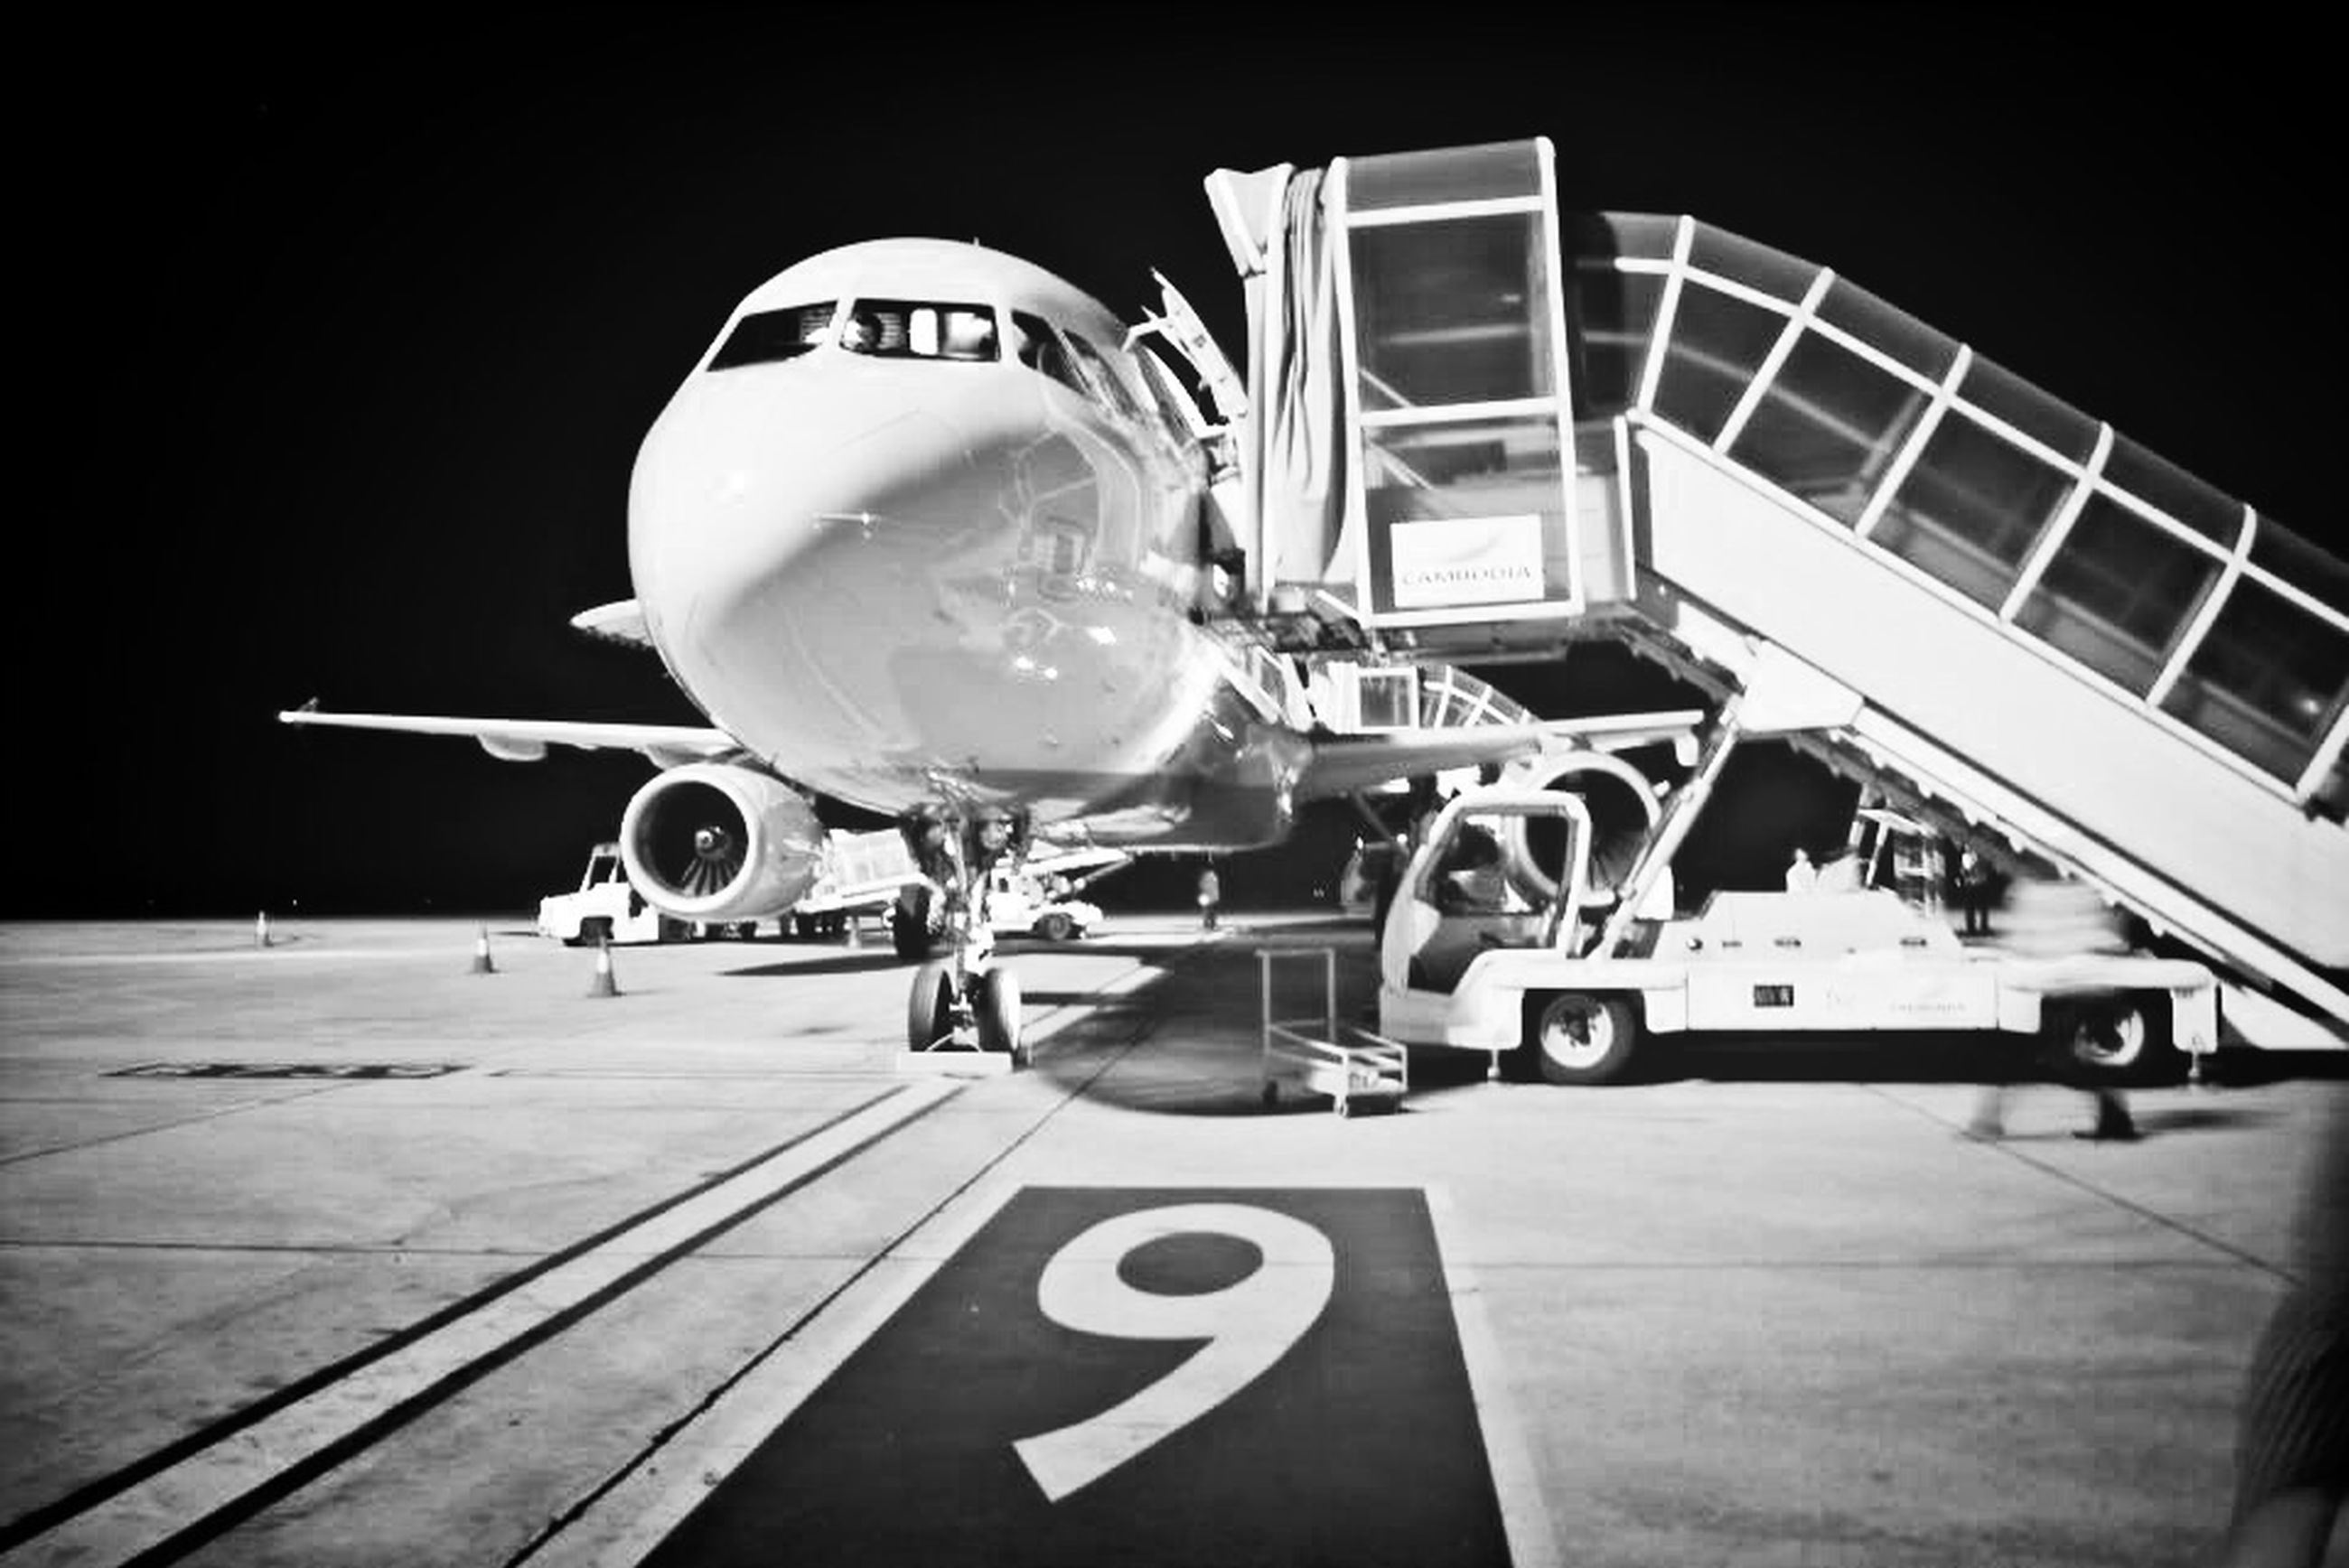 transportation, architecture, built structure, airplane, air vehicle, mode of transport, building exterior, airport, communication, city, low angle view, day, guidance, modern, text, clear sky, outdoors, lighting equipment, travel, western script